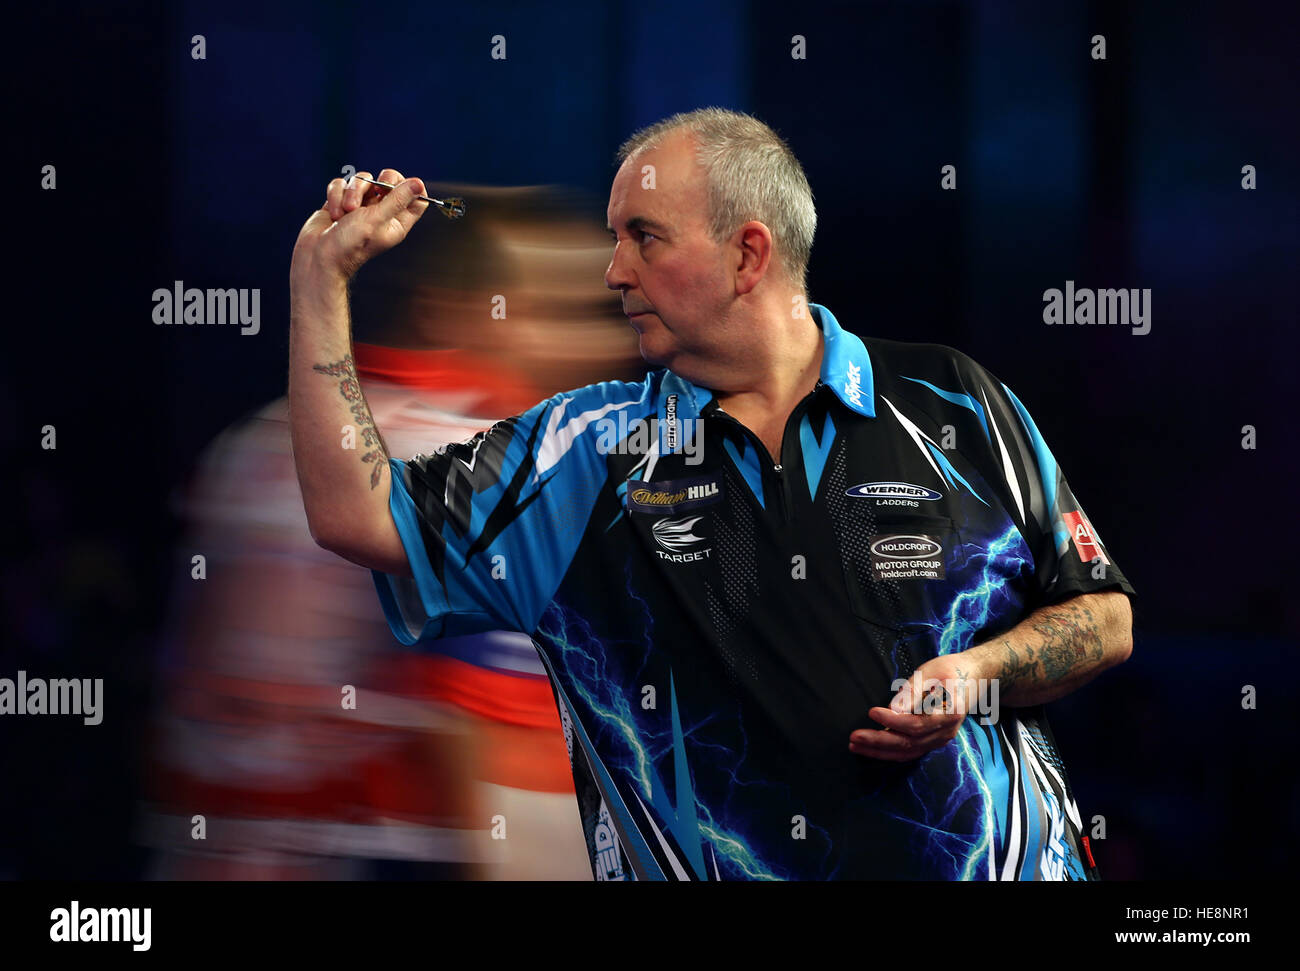 Phil Taylor en action au cours de la quatrième journée de la William Hill World Darts Championship à Photo Stock